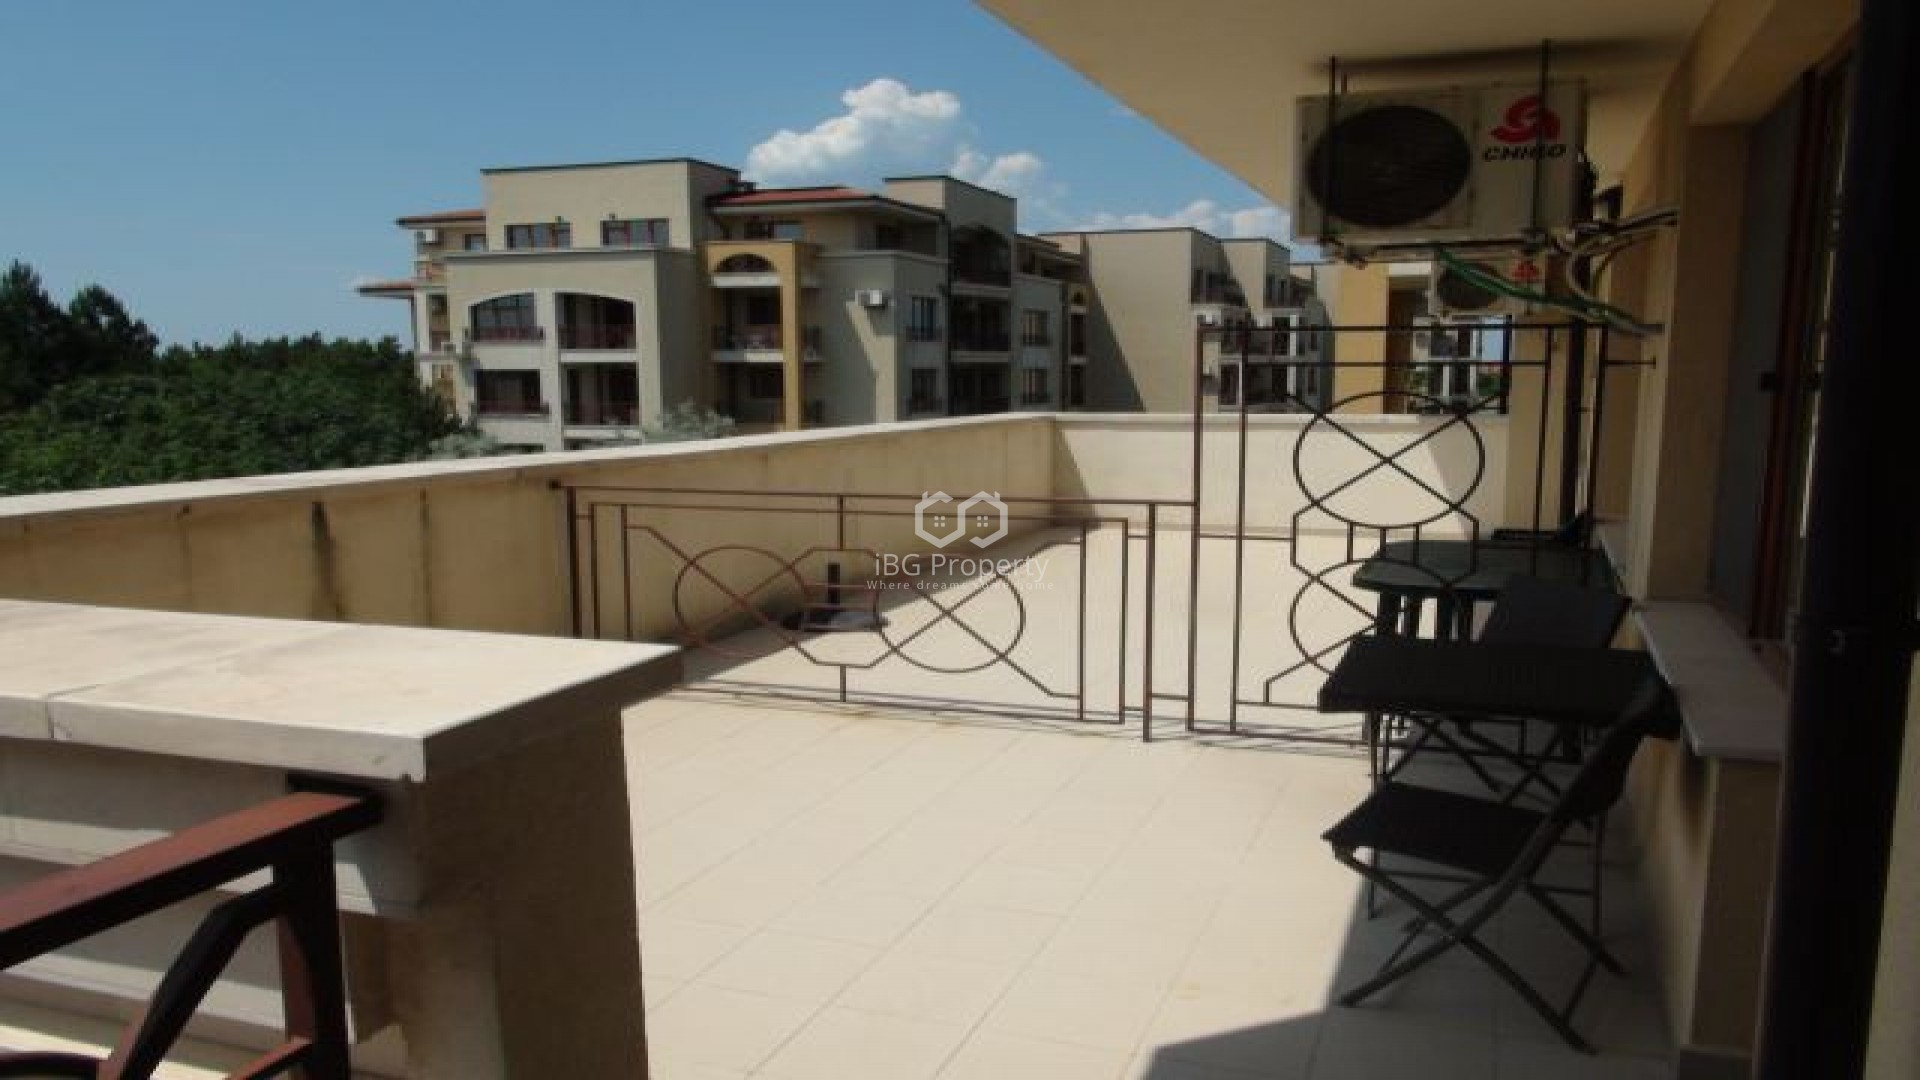 One bedroom apartment Balchik 90 m2